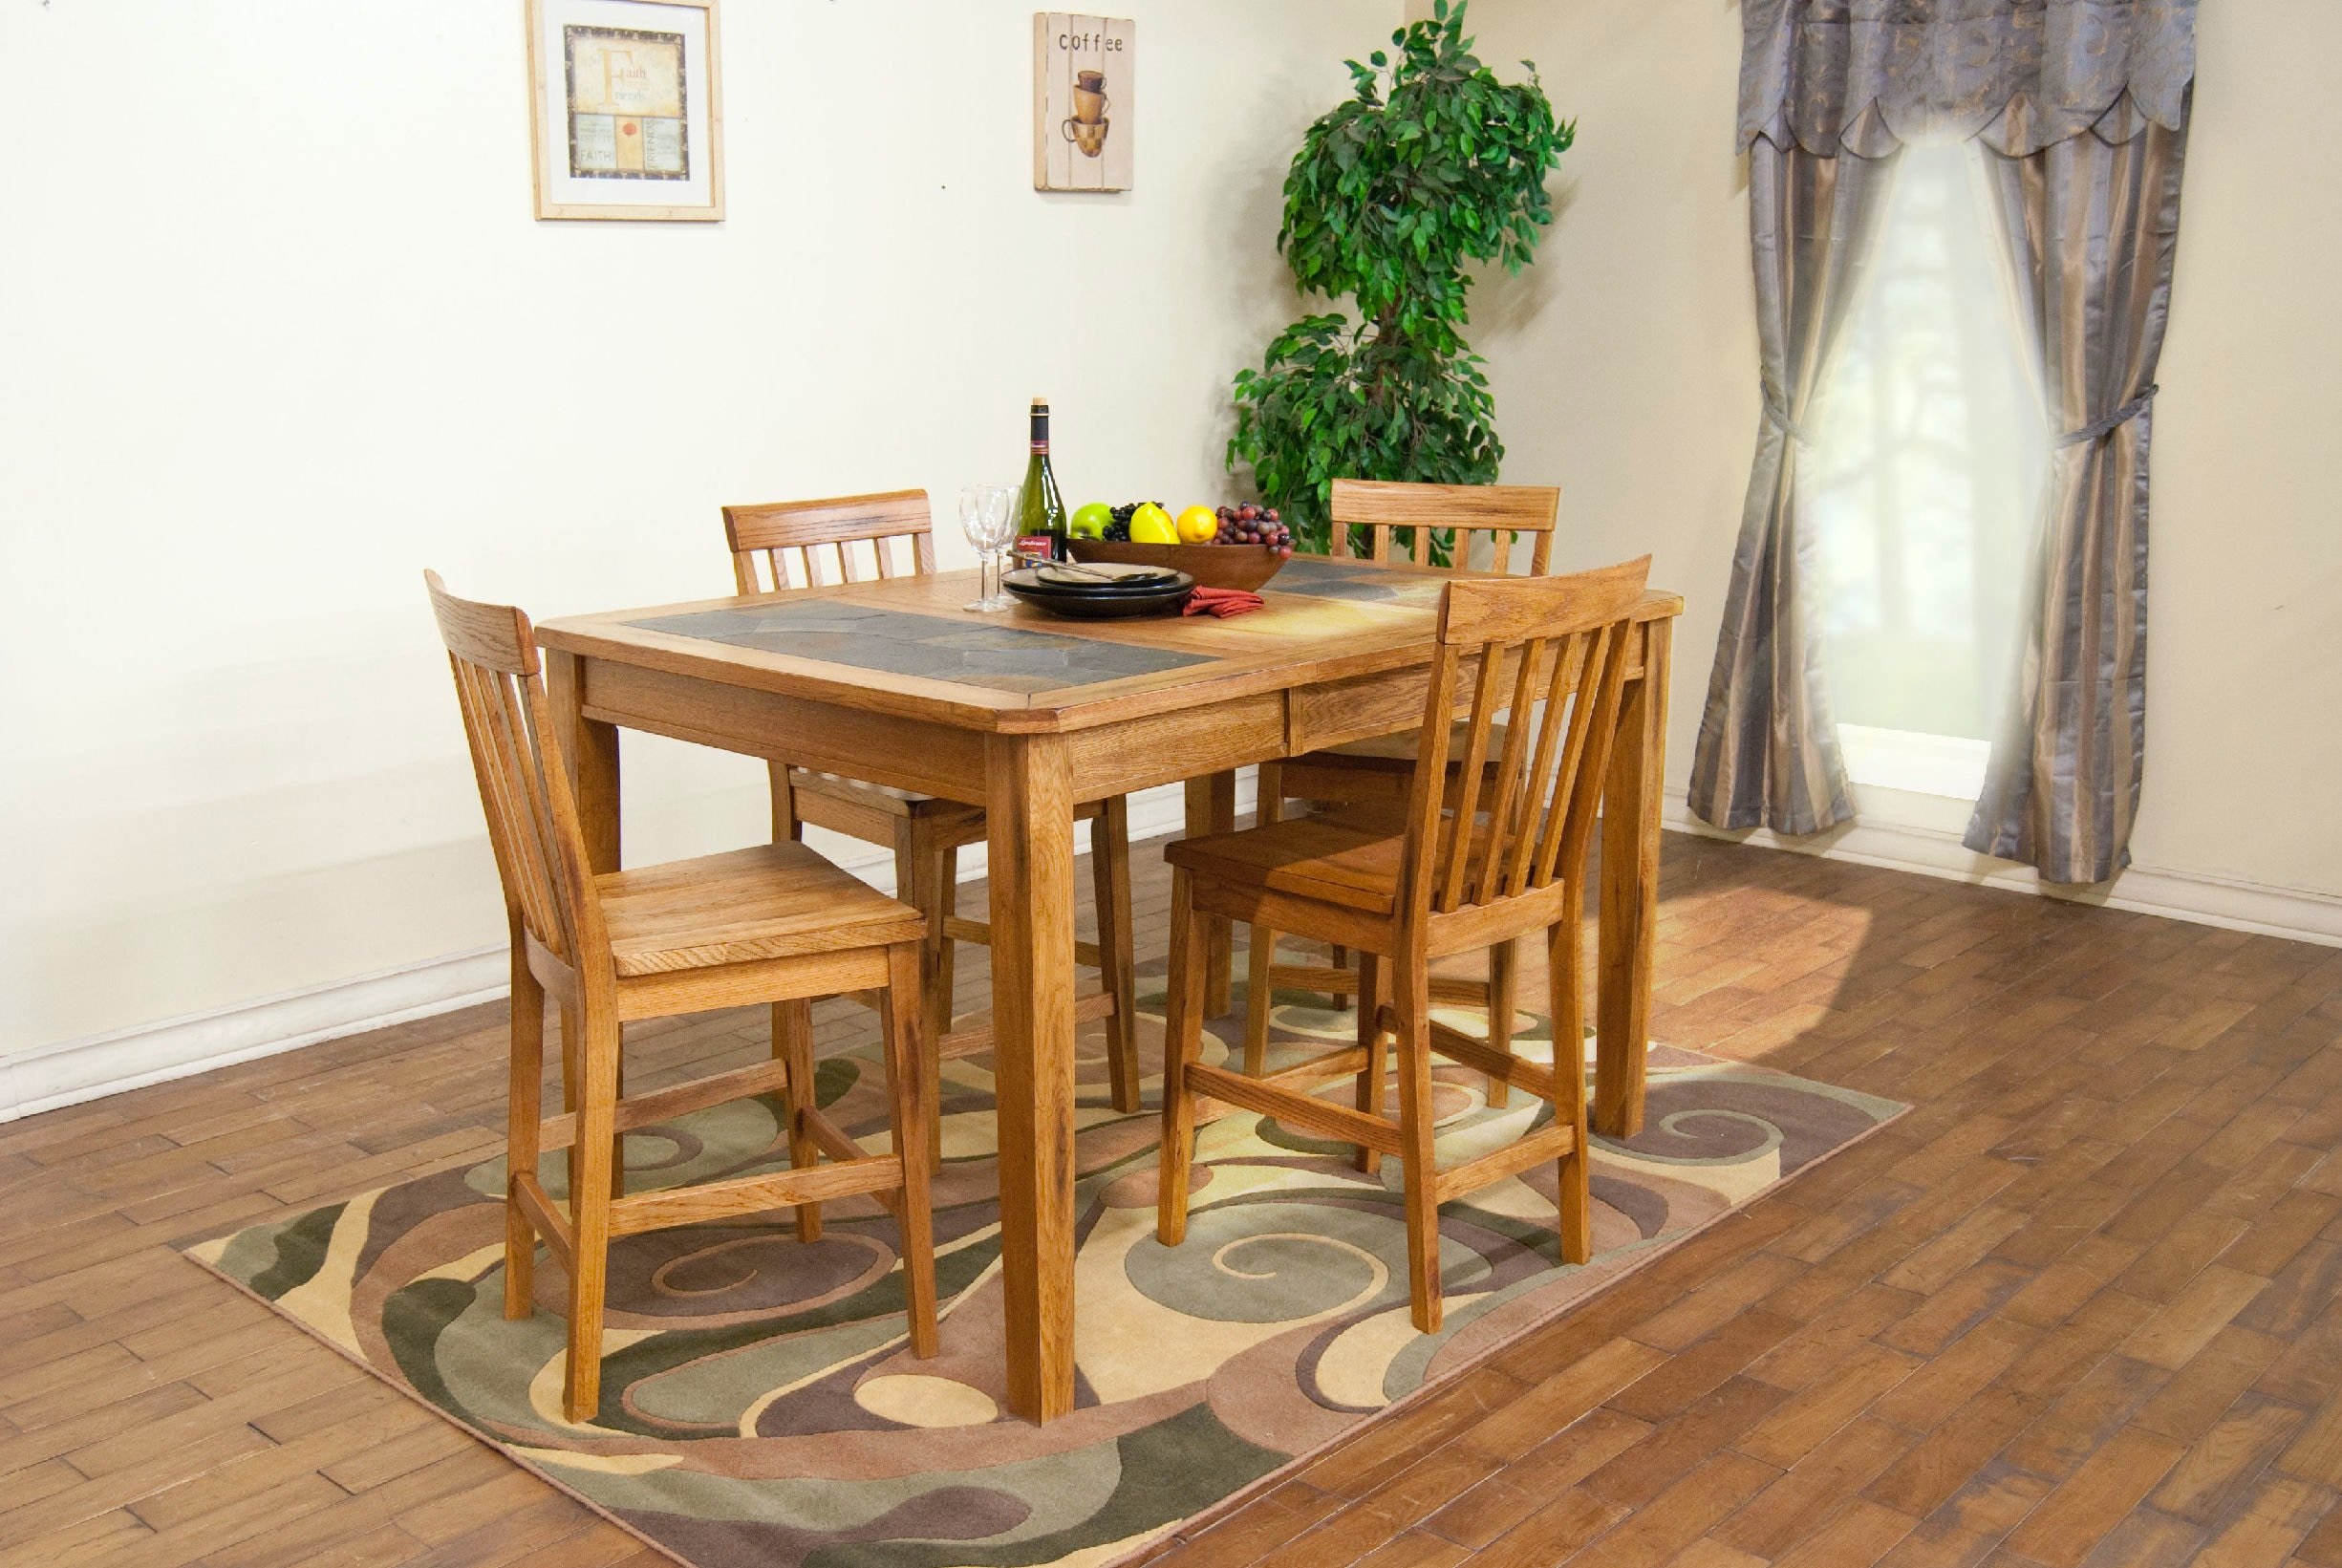 Sunny Designs Dining Room Sedona Counter Height Extension